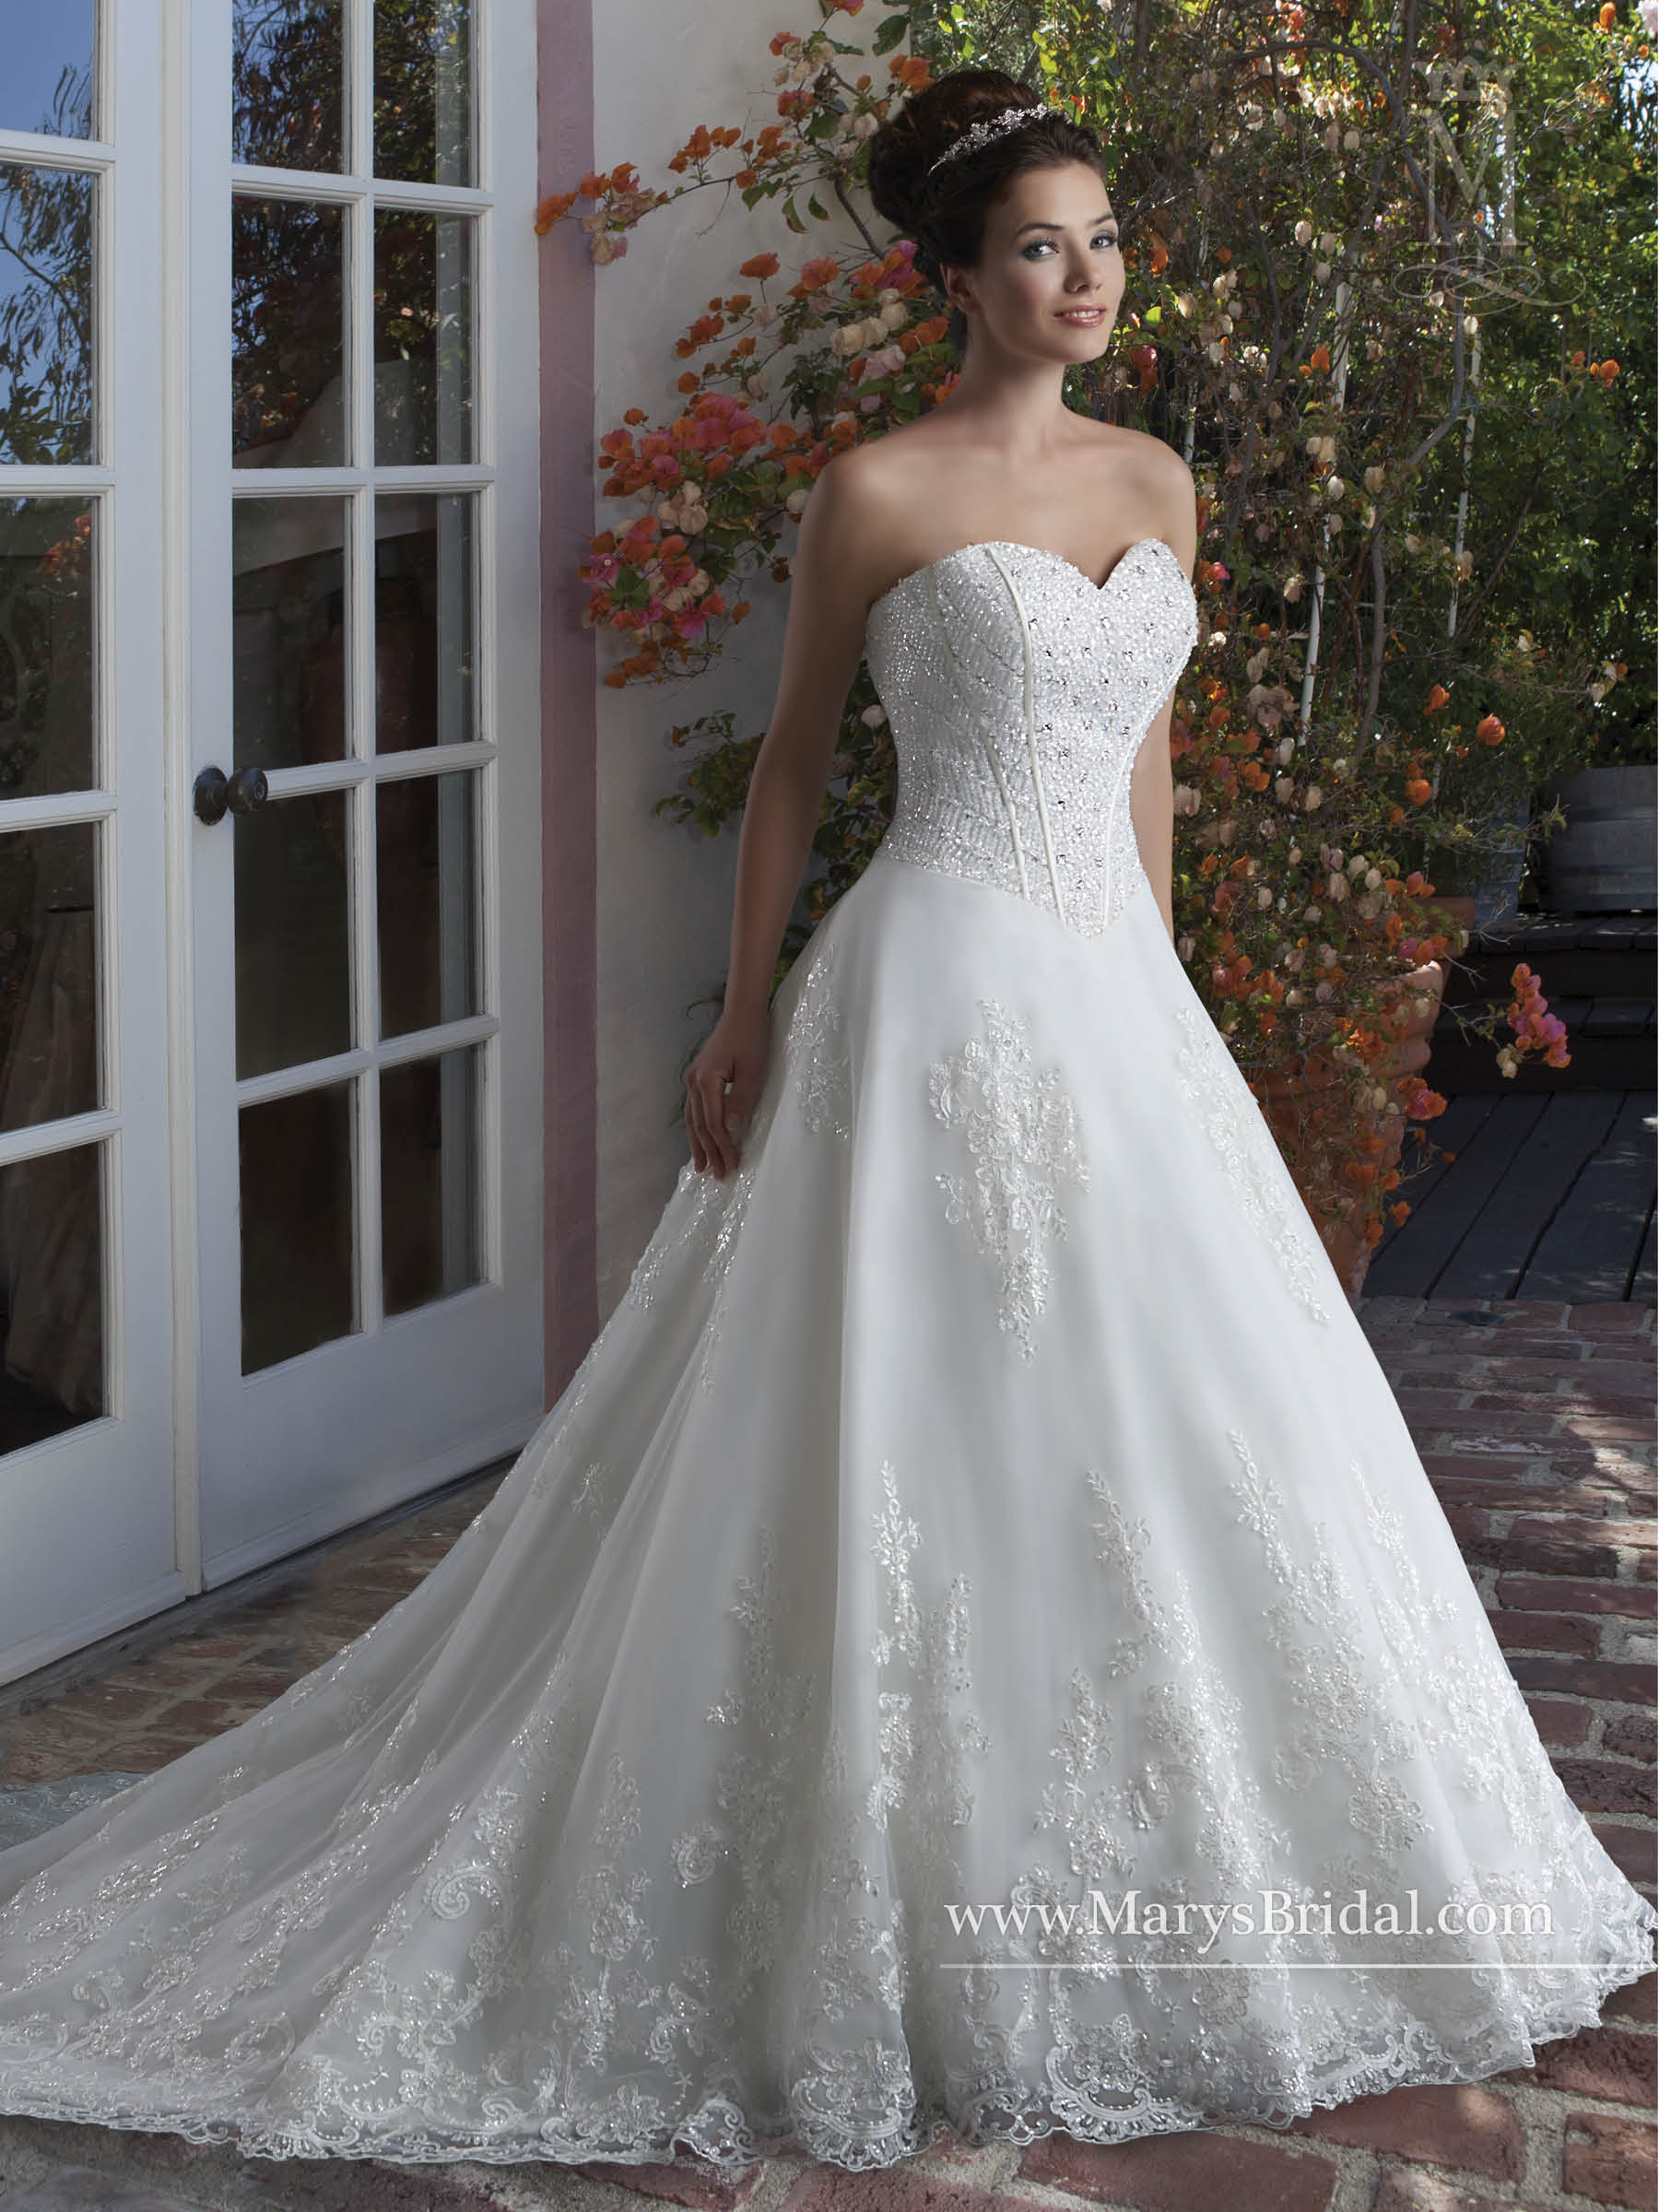 Bridal Wedding Dresses Style 6543 In Ivory Or White Color